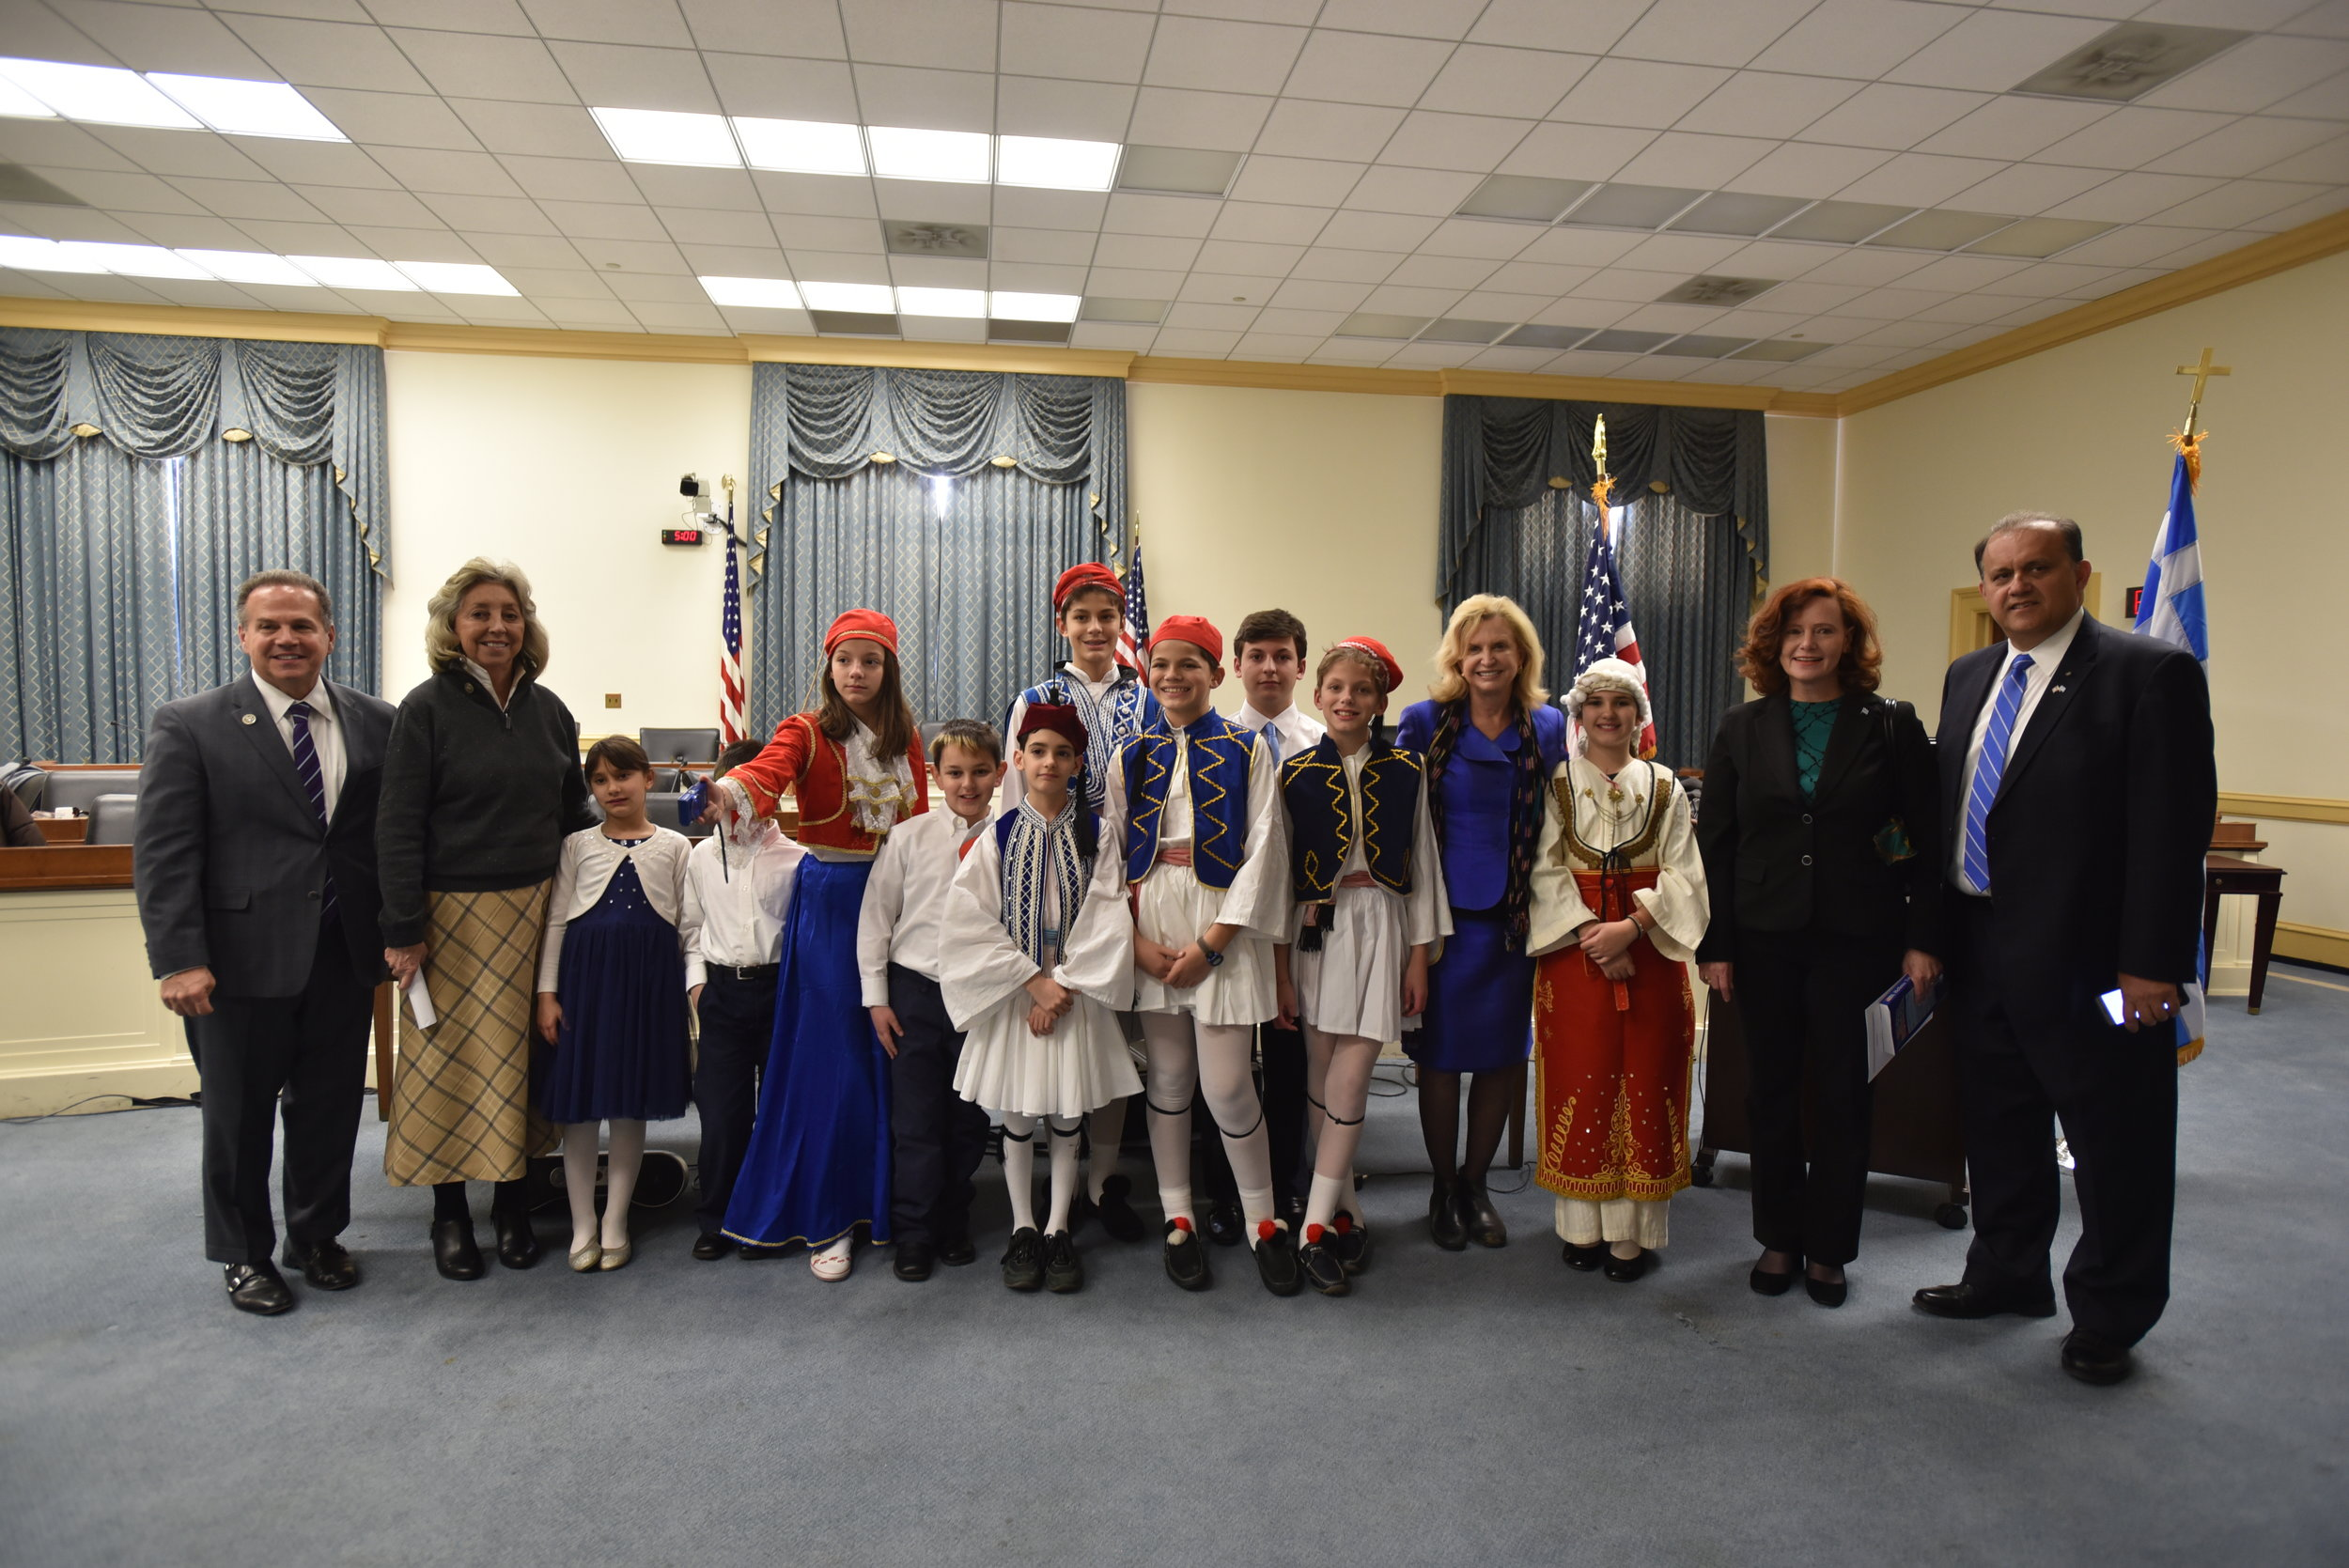 Rep. David Cicilline, Rep. Dina Titus, Rep. Carolyn Maloney and AHI President Nick Larigakis with the students of the Hellenic Education Center of the Greek Orthodox Church of Saint Katherine, Falls Church, VA.